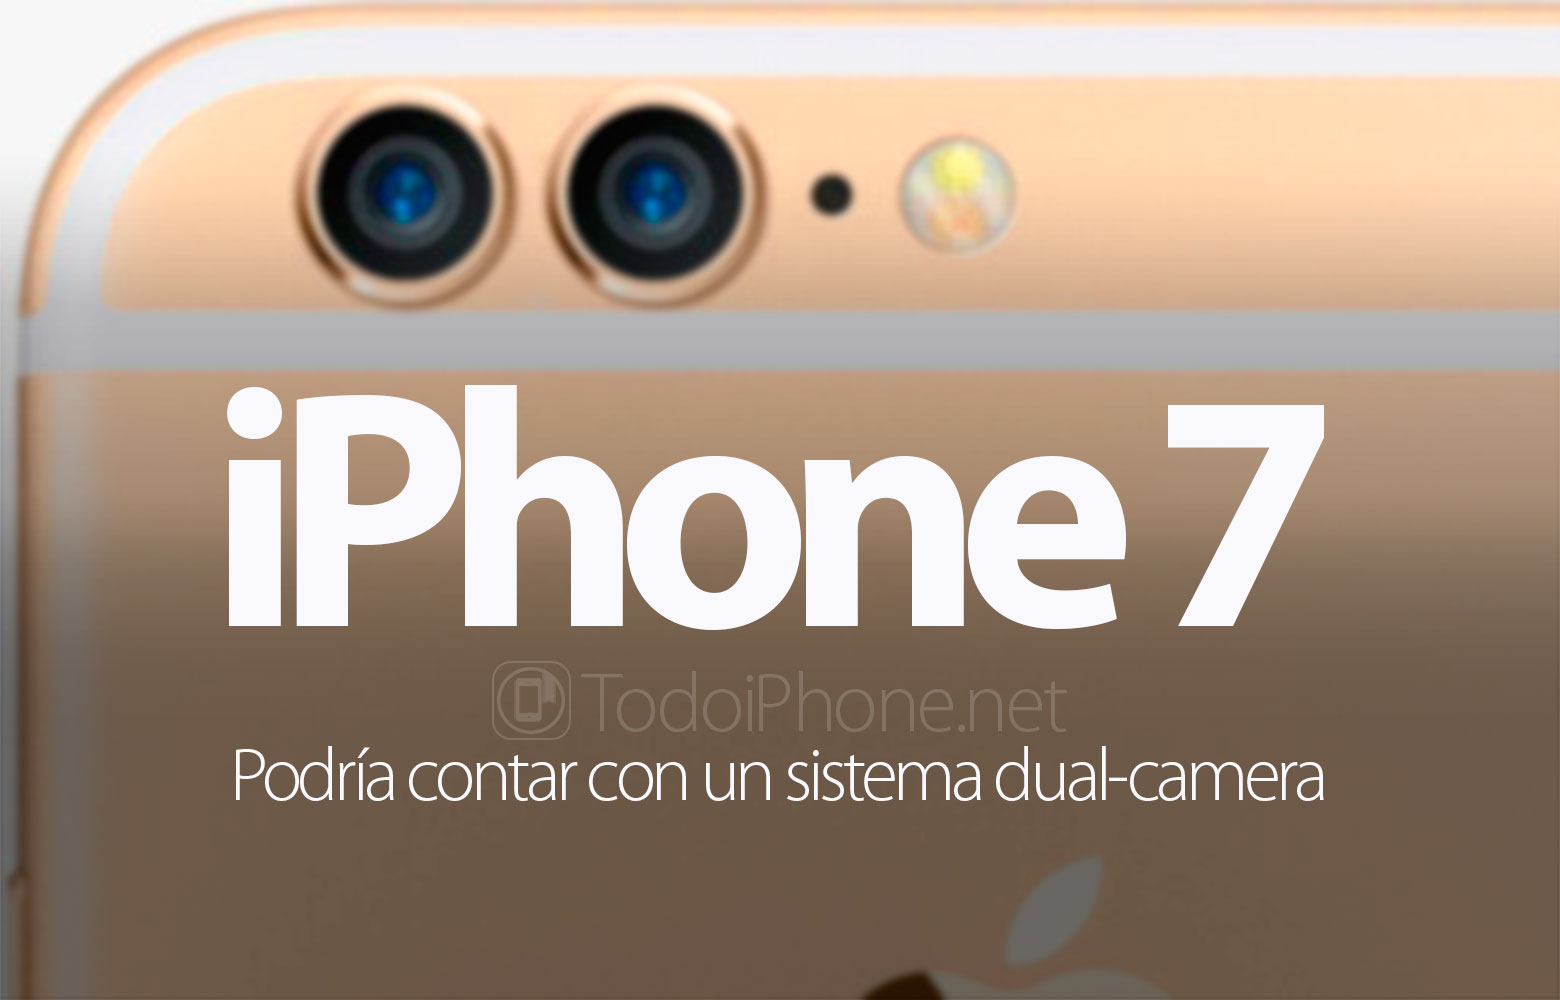 iphone-7-rumor-dual-camera